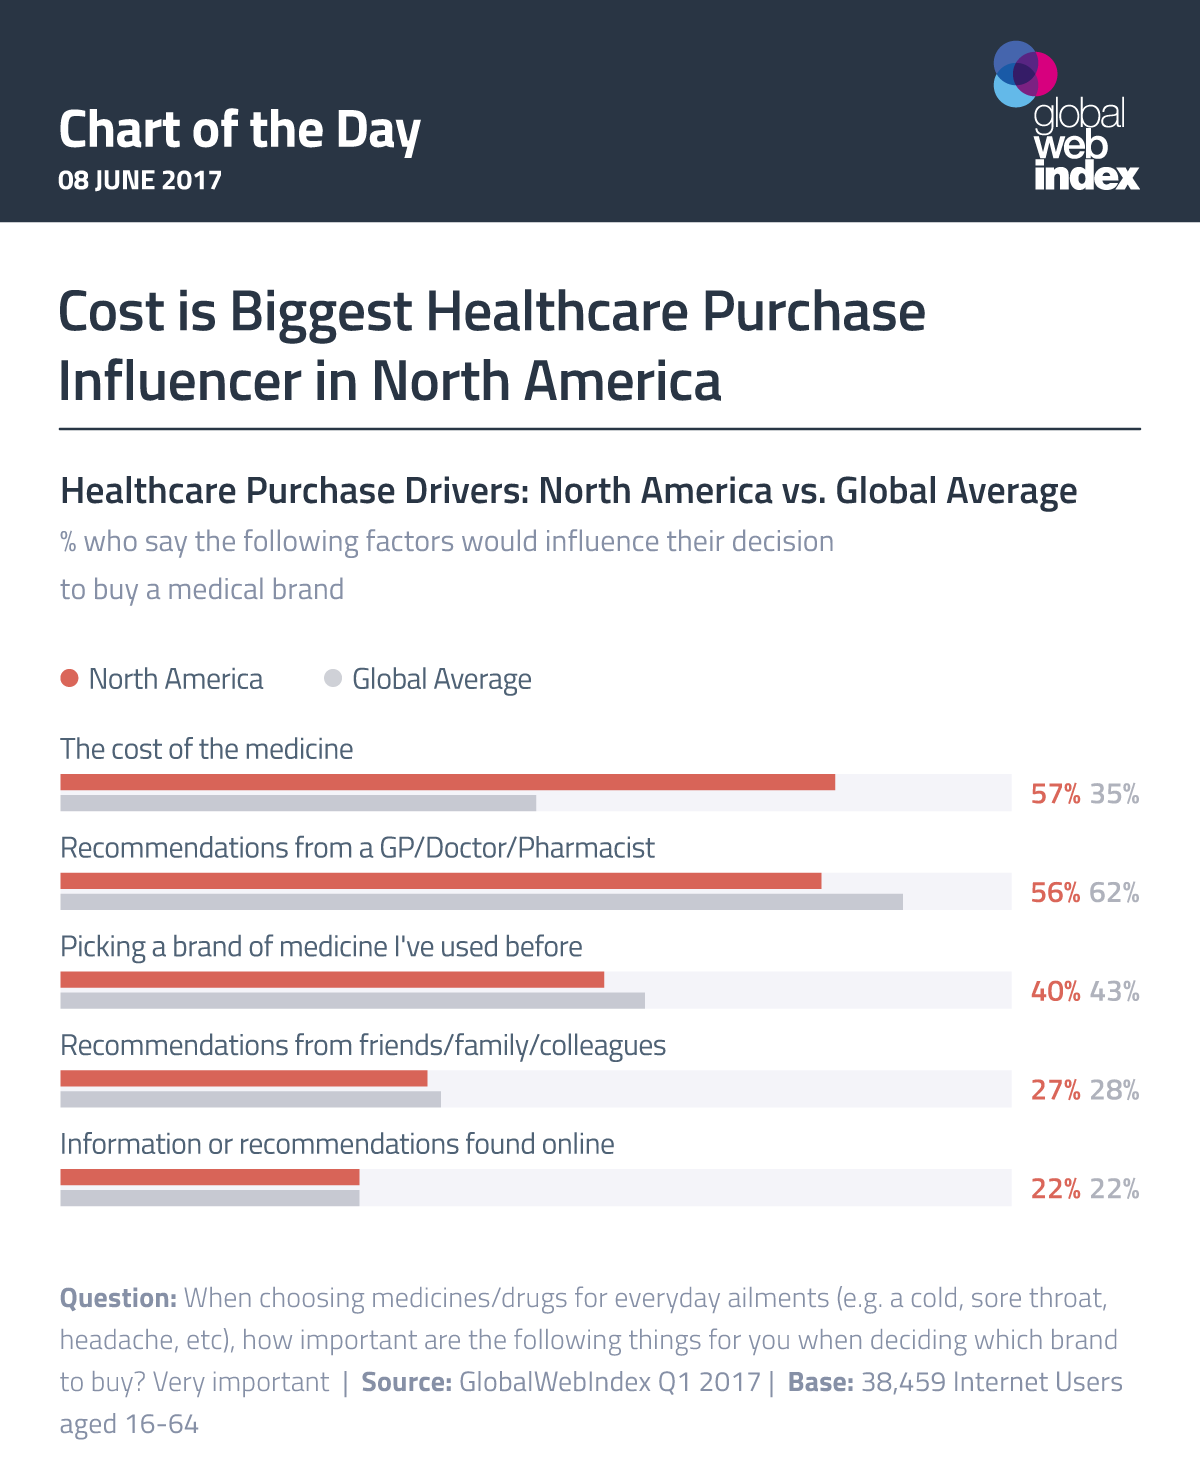 Cost is Biggest Healthcare Purchase Influencer in North America